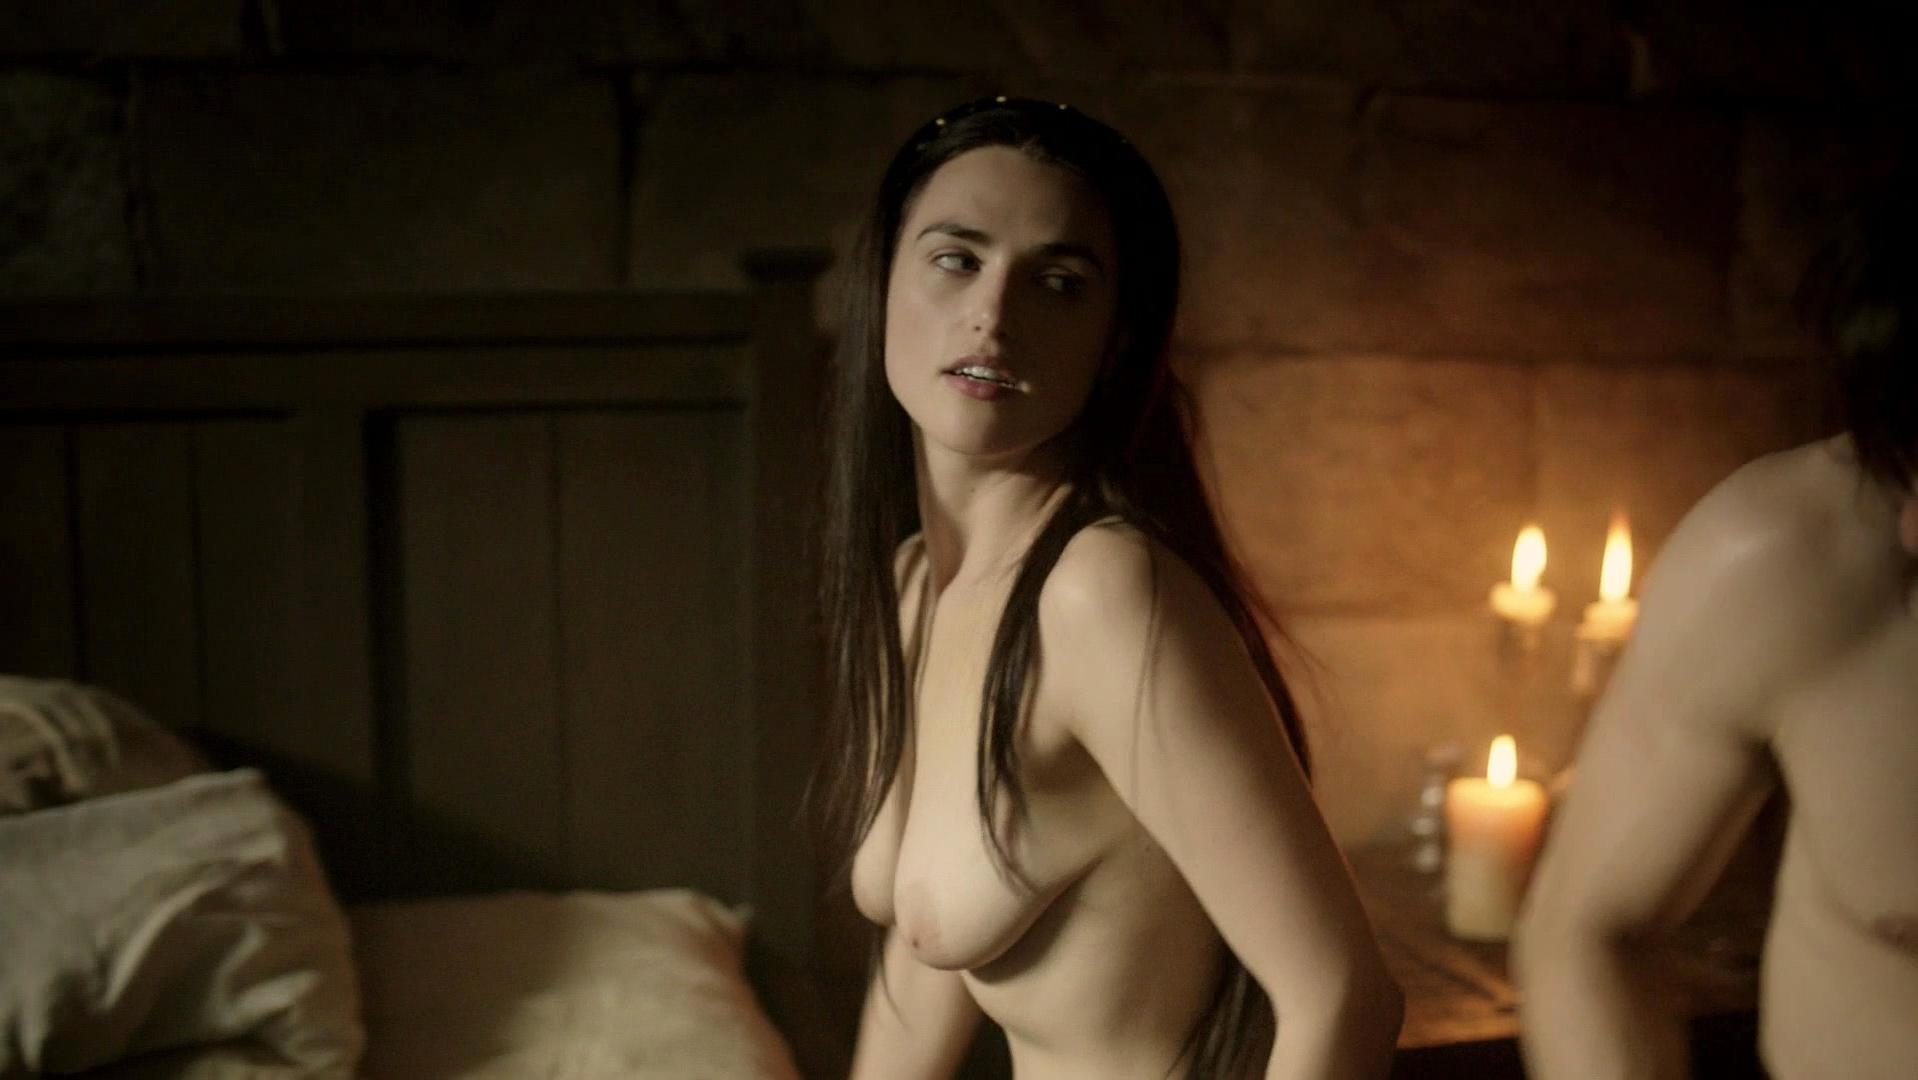 De katie mcgrath xxx question interesting